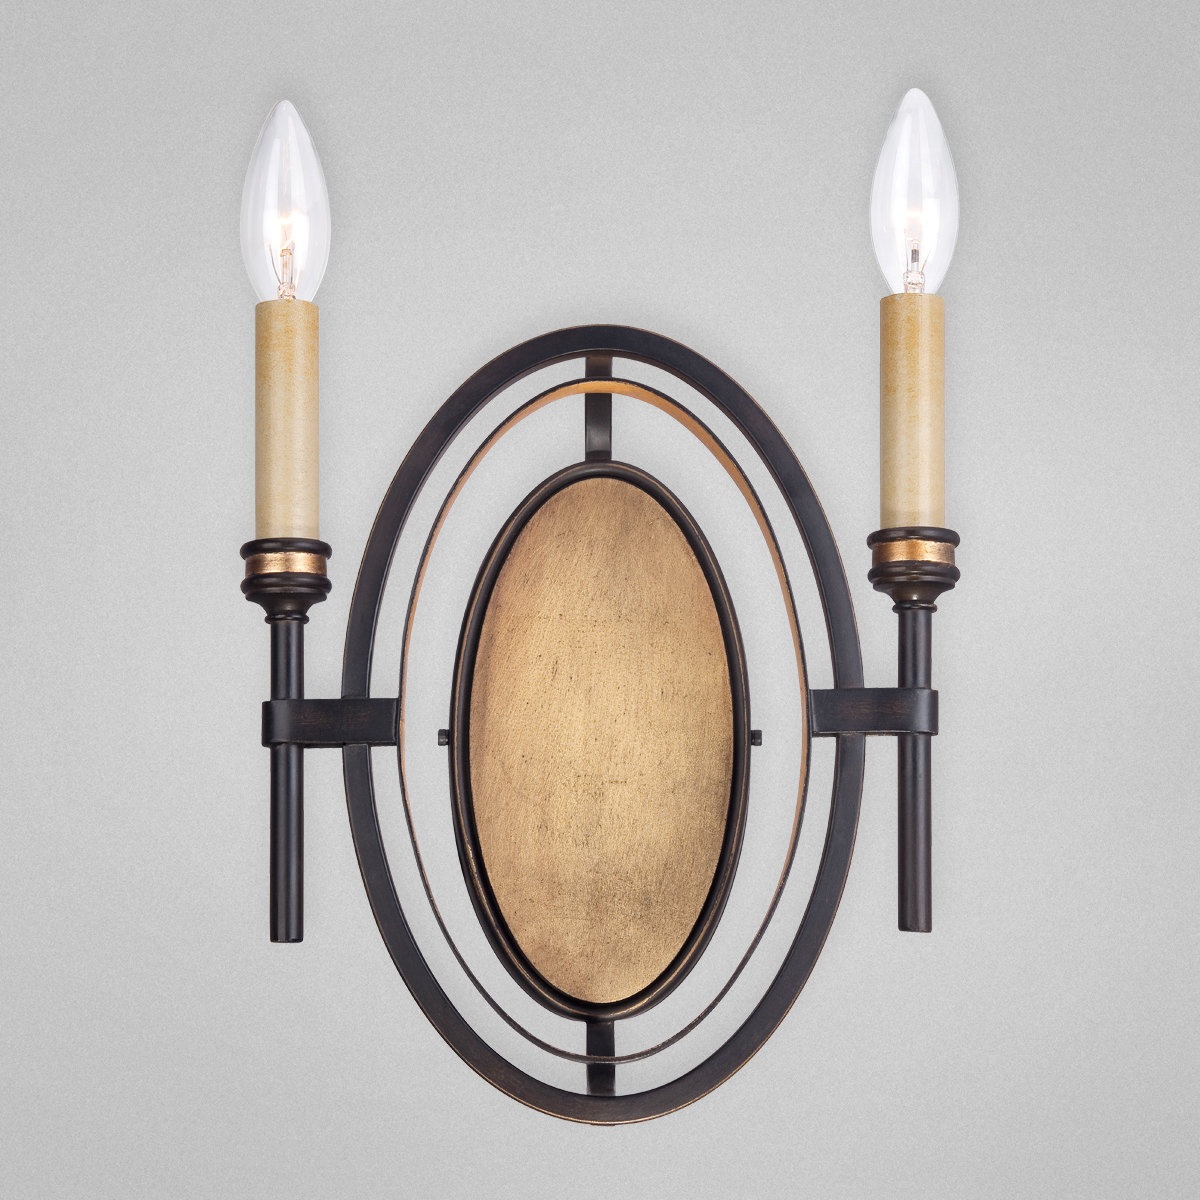 2 light wall sconce bronze photo - 10